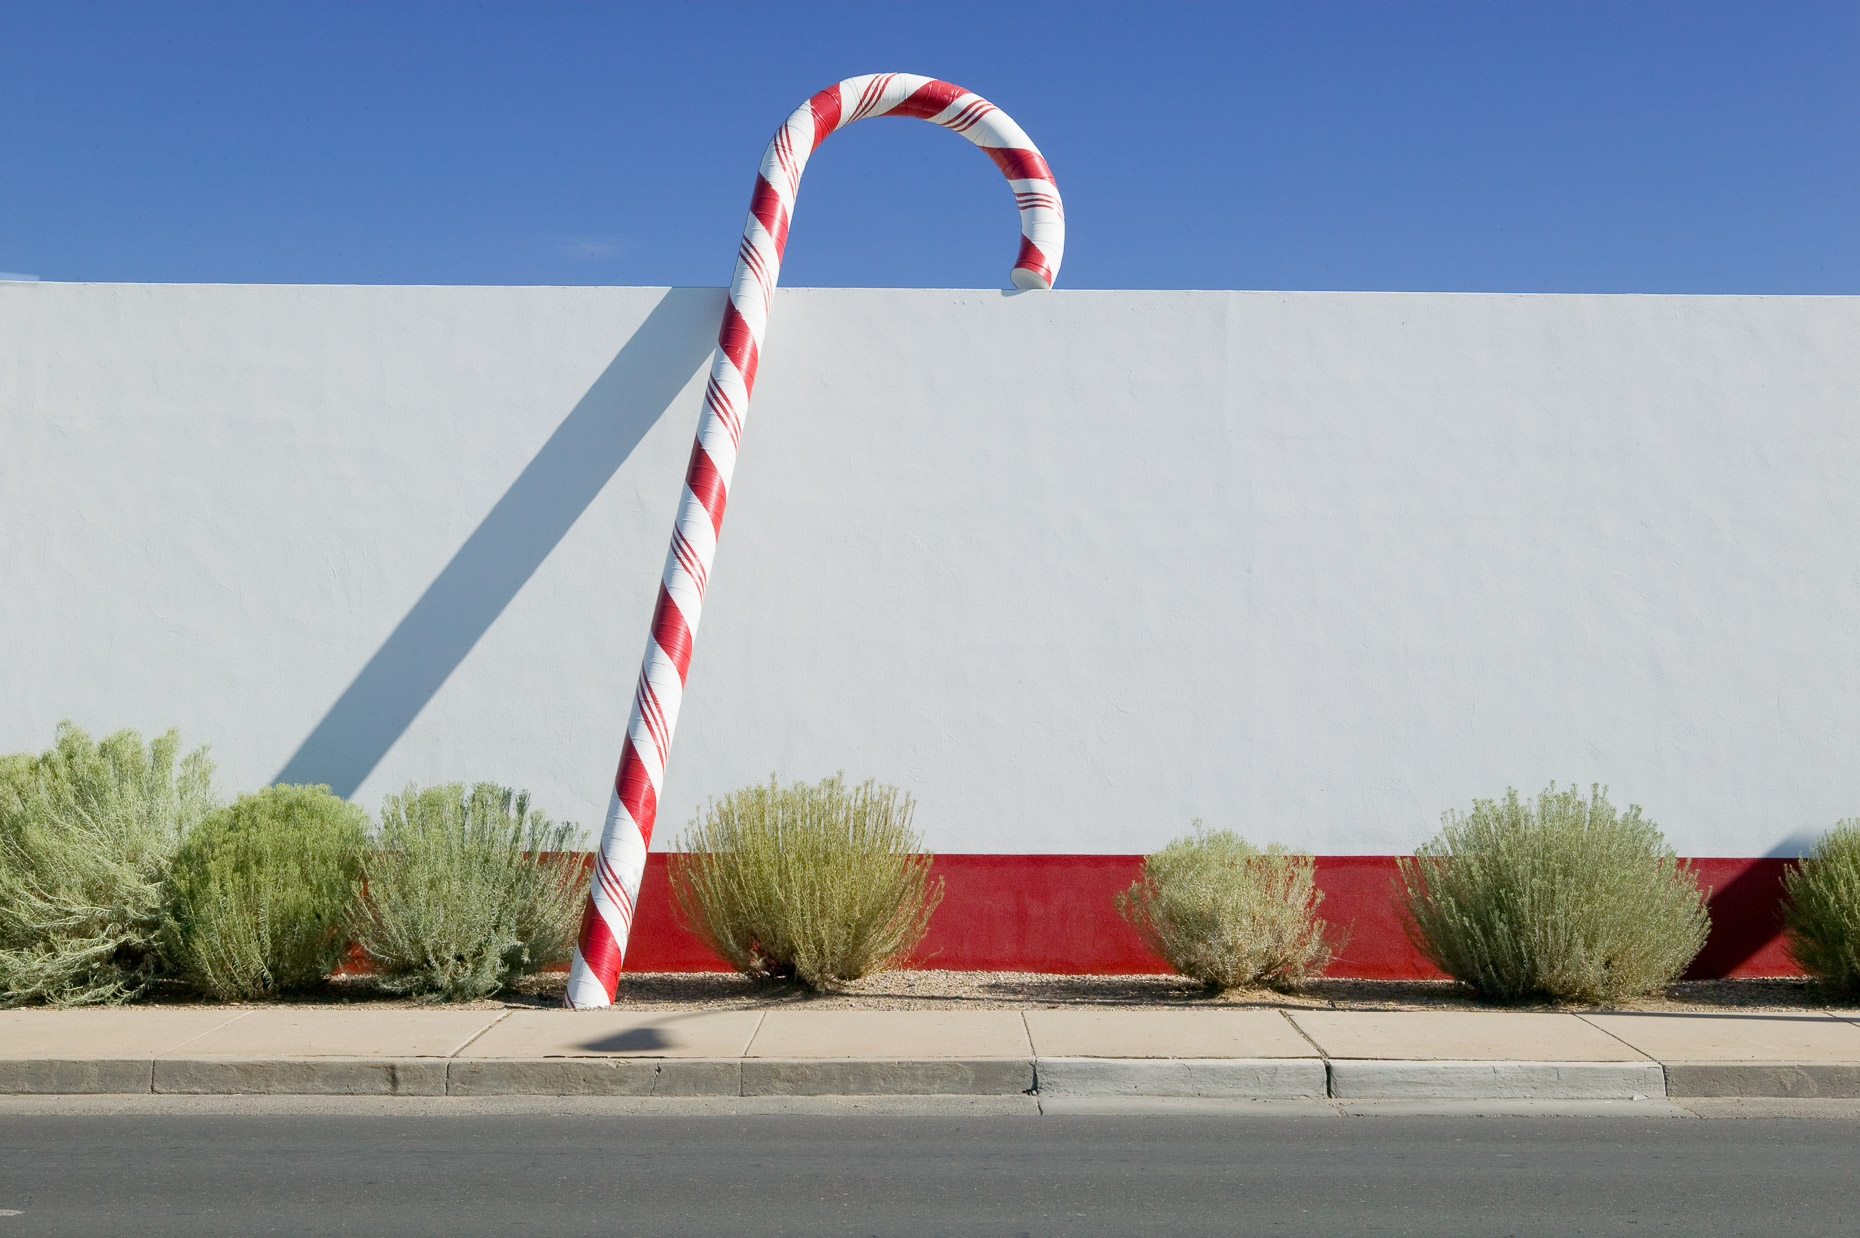 Huge candy cane on side of building by David Zaitz